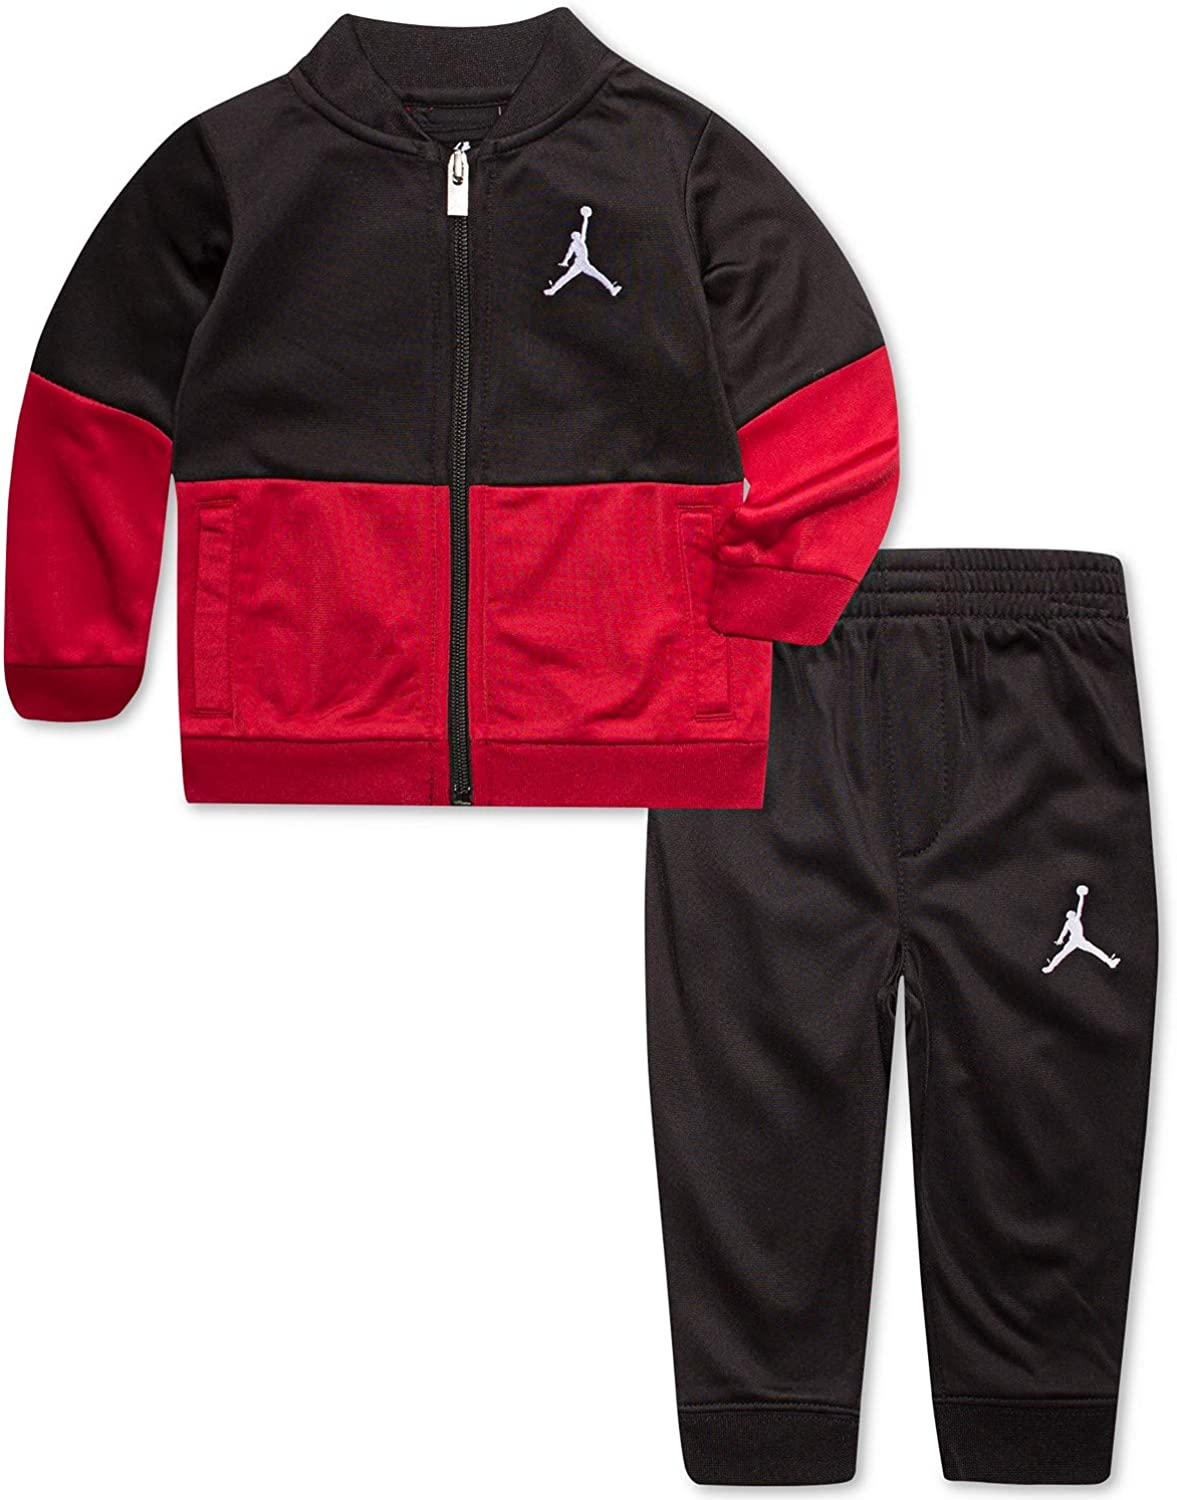 Nike Boy`s Two Piece Tracksuit Jacket /& Pants Set